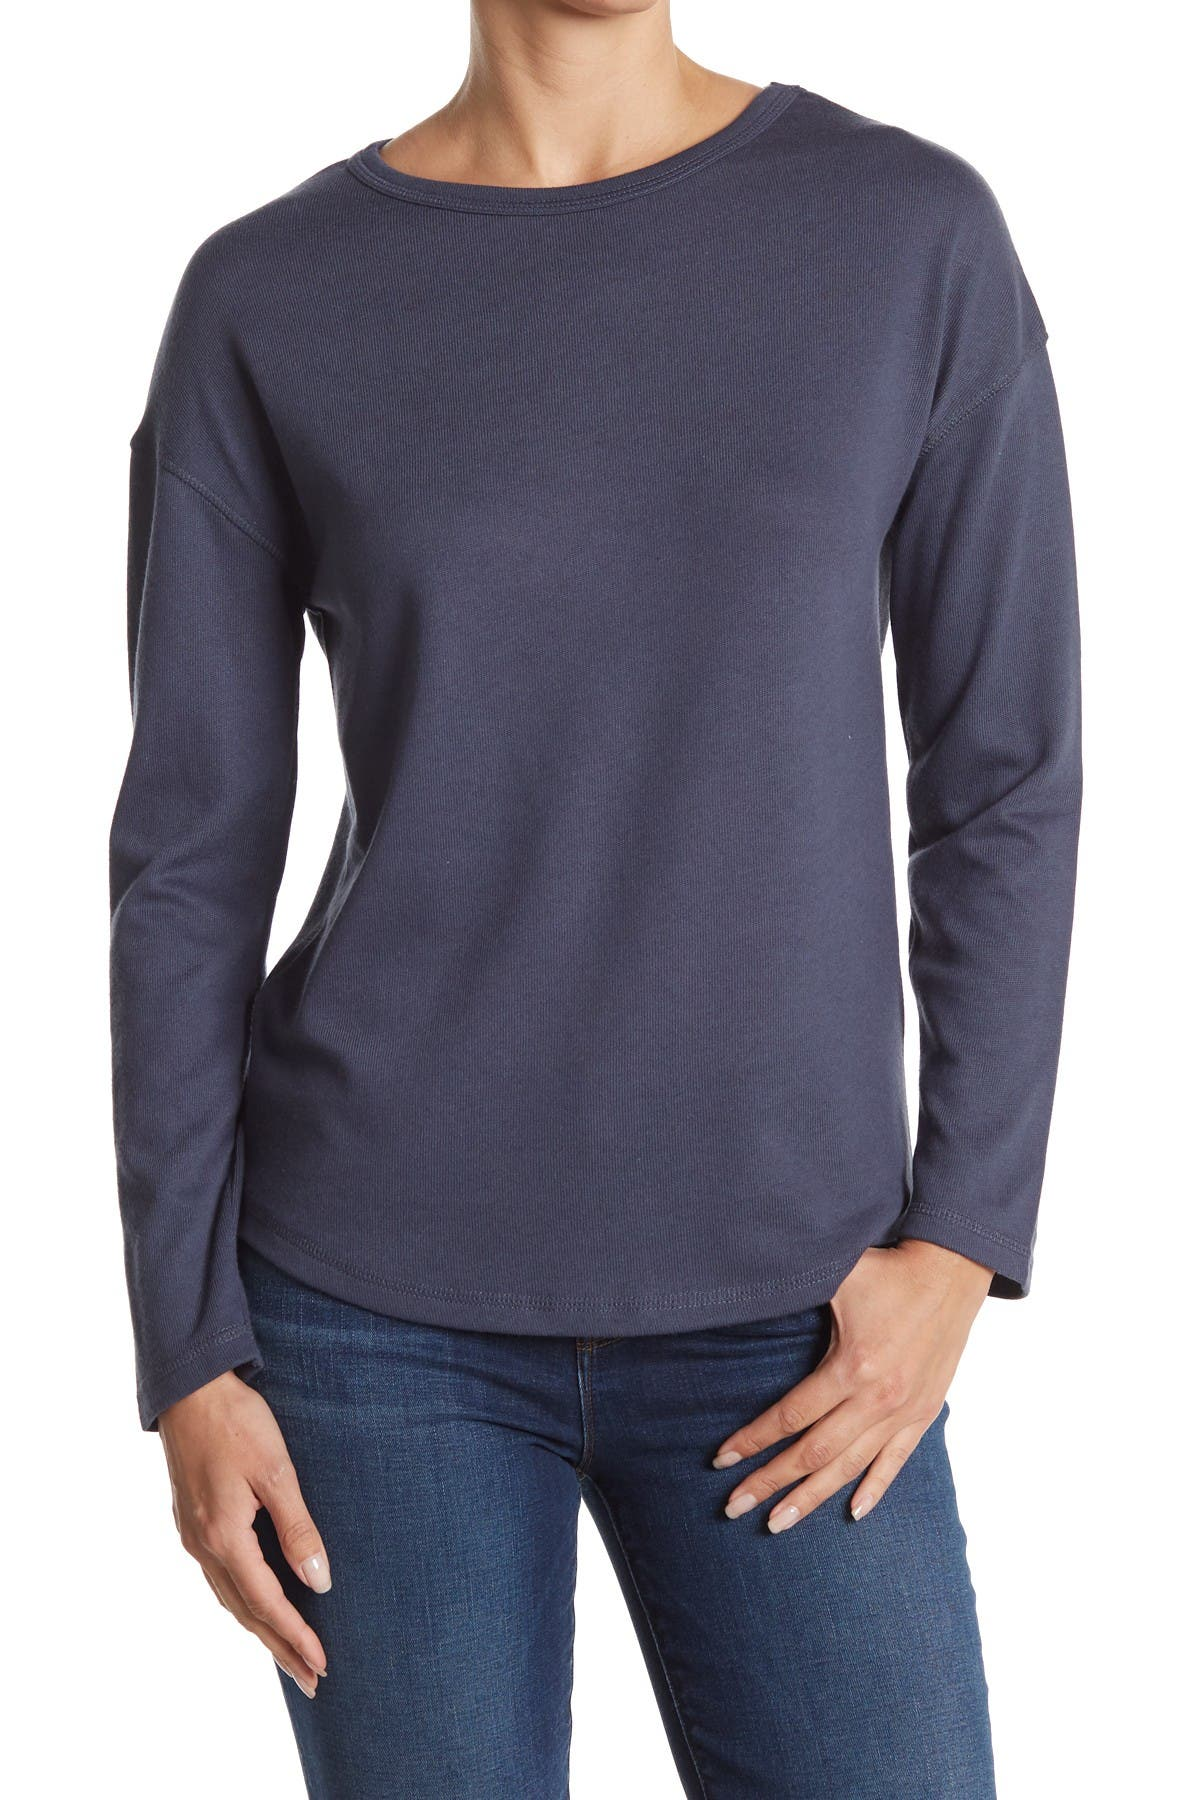 Image of Alternative Drop Shoulder Lounge Pullover